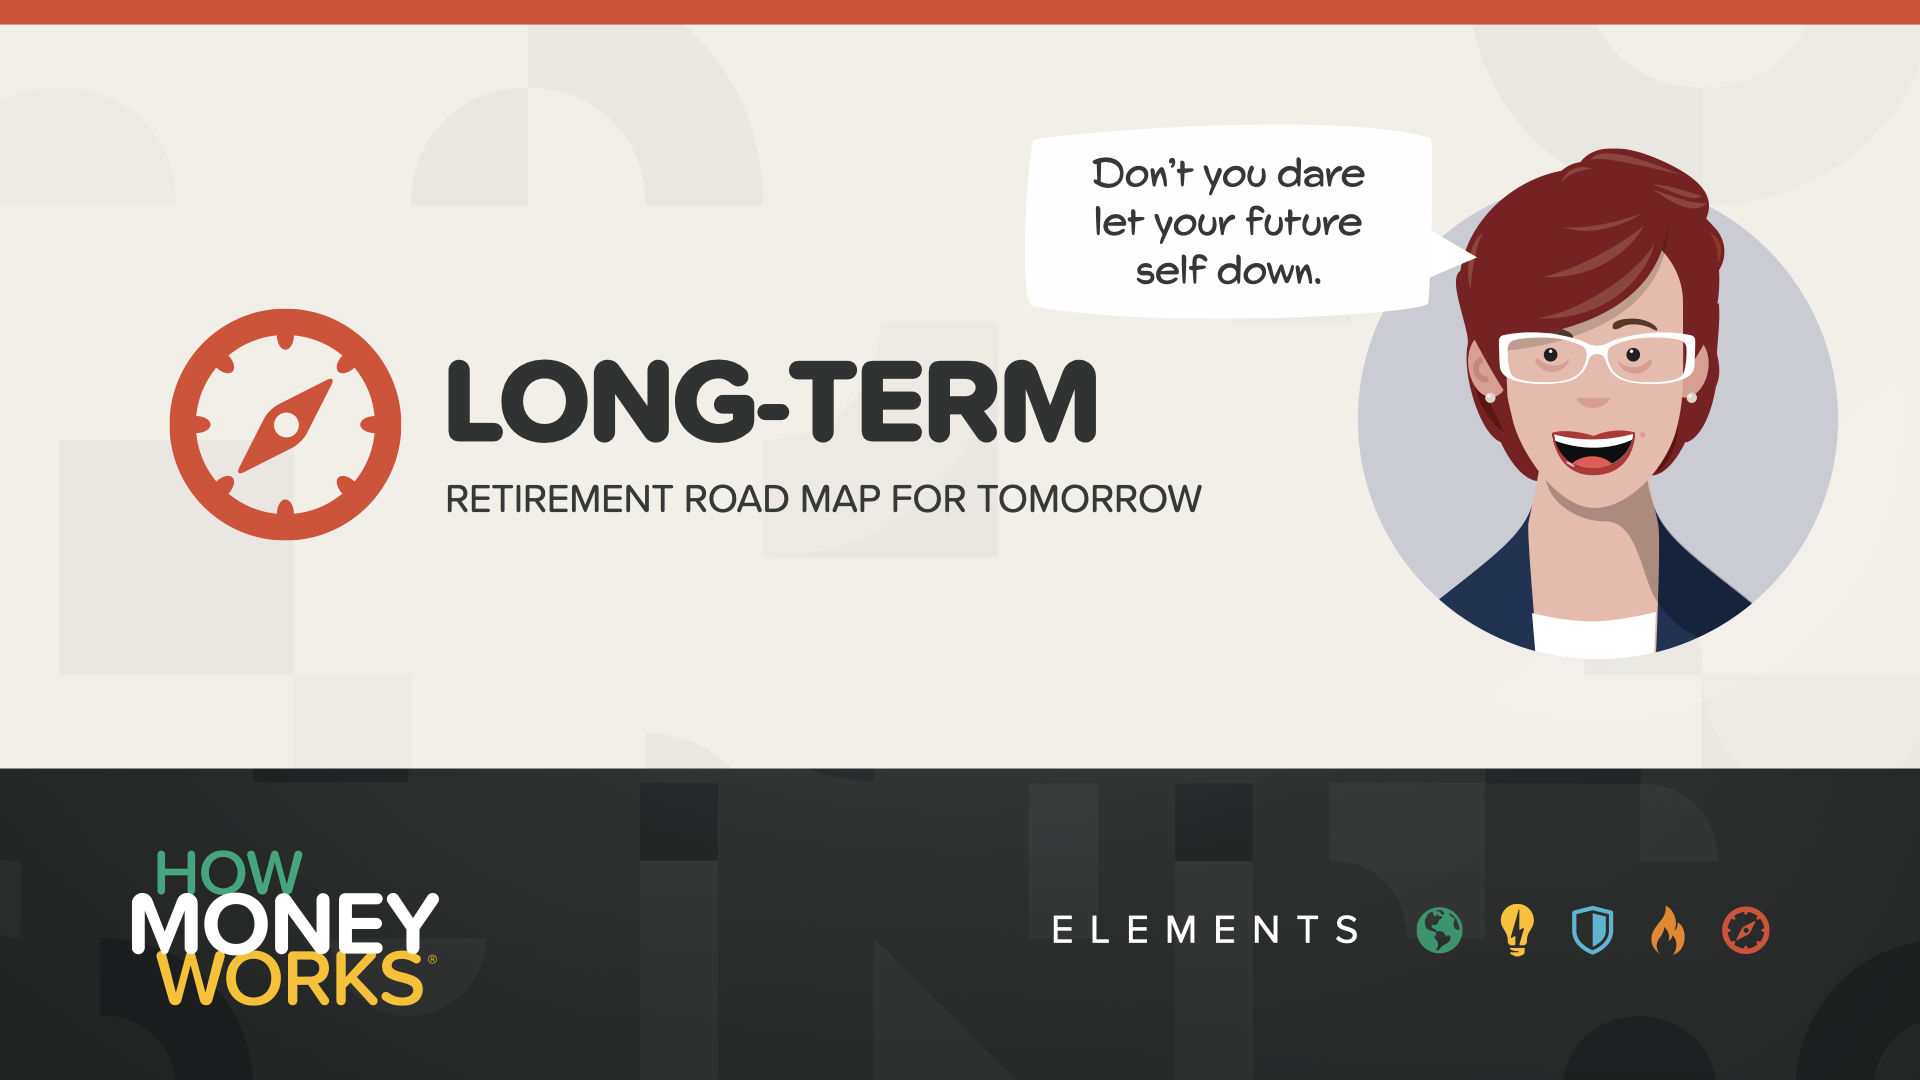 ELEMENTS - Long-Term